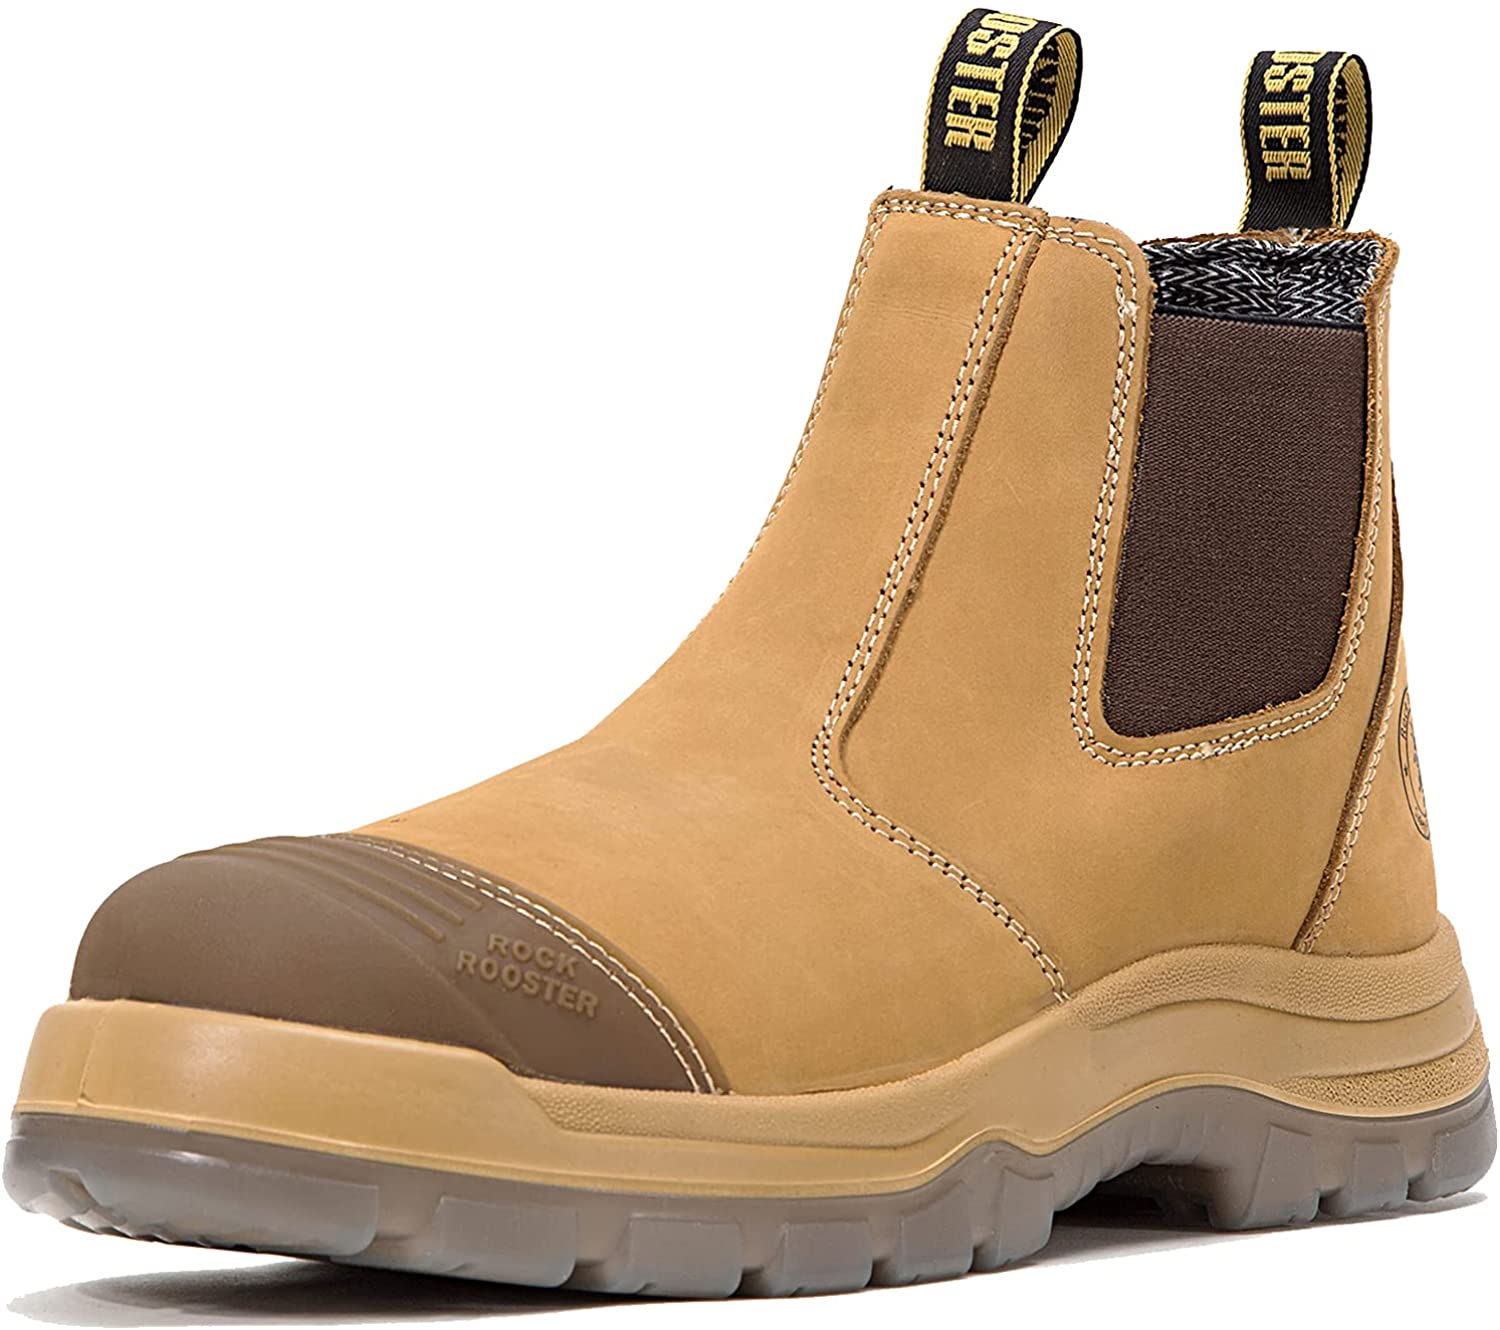 ROCKROOSTER Work Boots for Max 56% OFF Men 6 On Ranking TOP16 inch Safety Slip Steel Toe